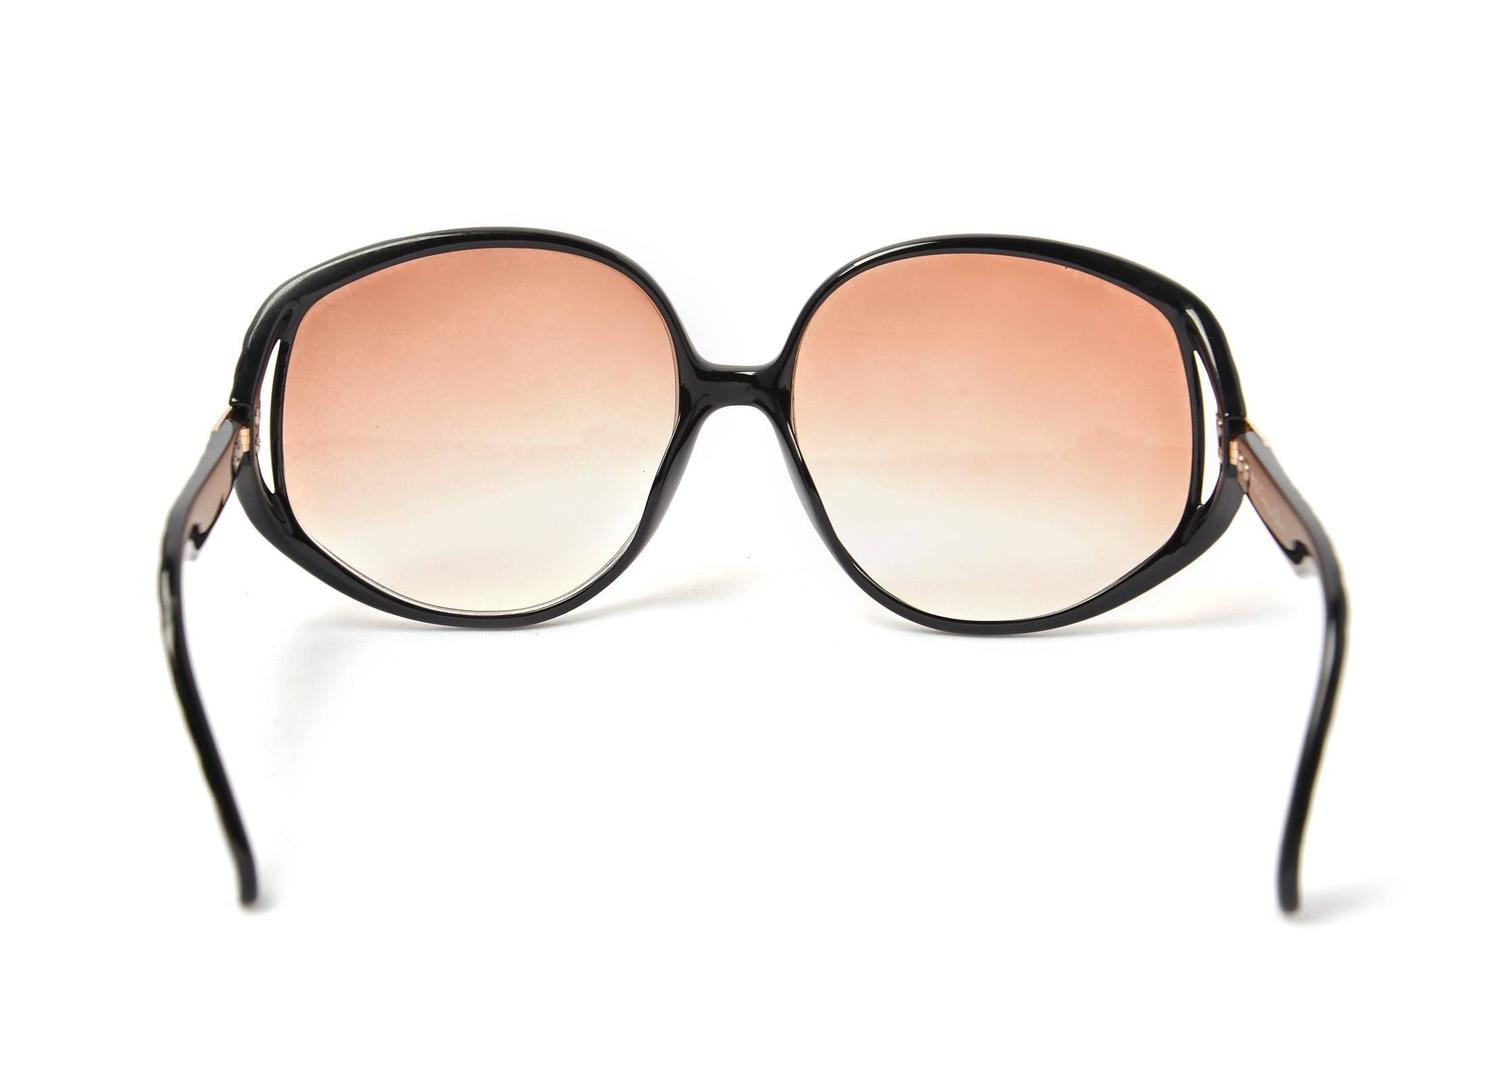 Dior Glasses Frame 2014 : 1980s Christian Dior Black Logo Sunglasses Frames Germany ...